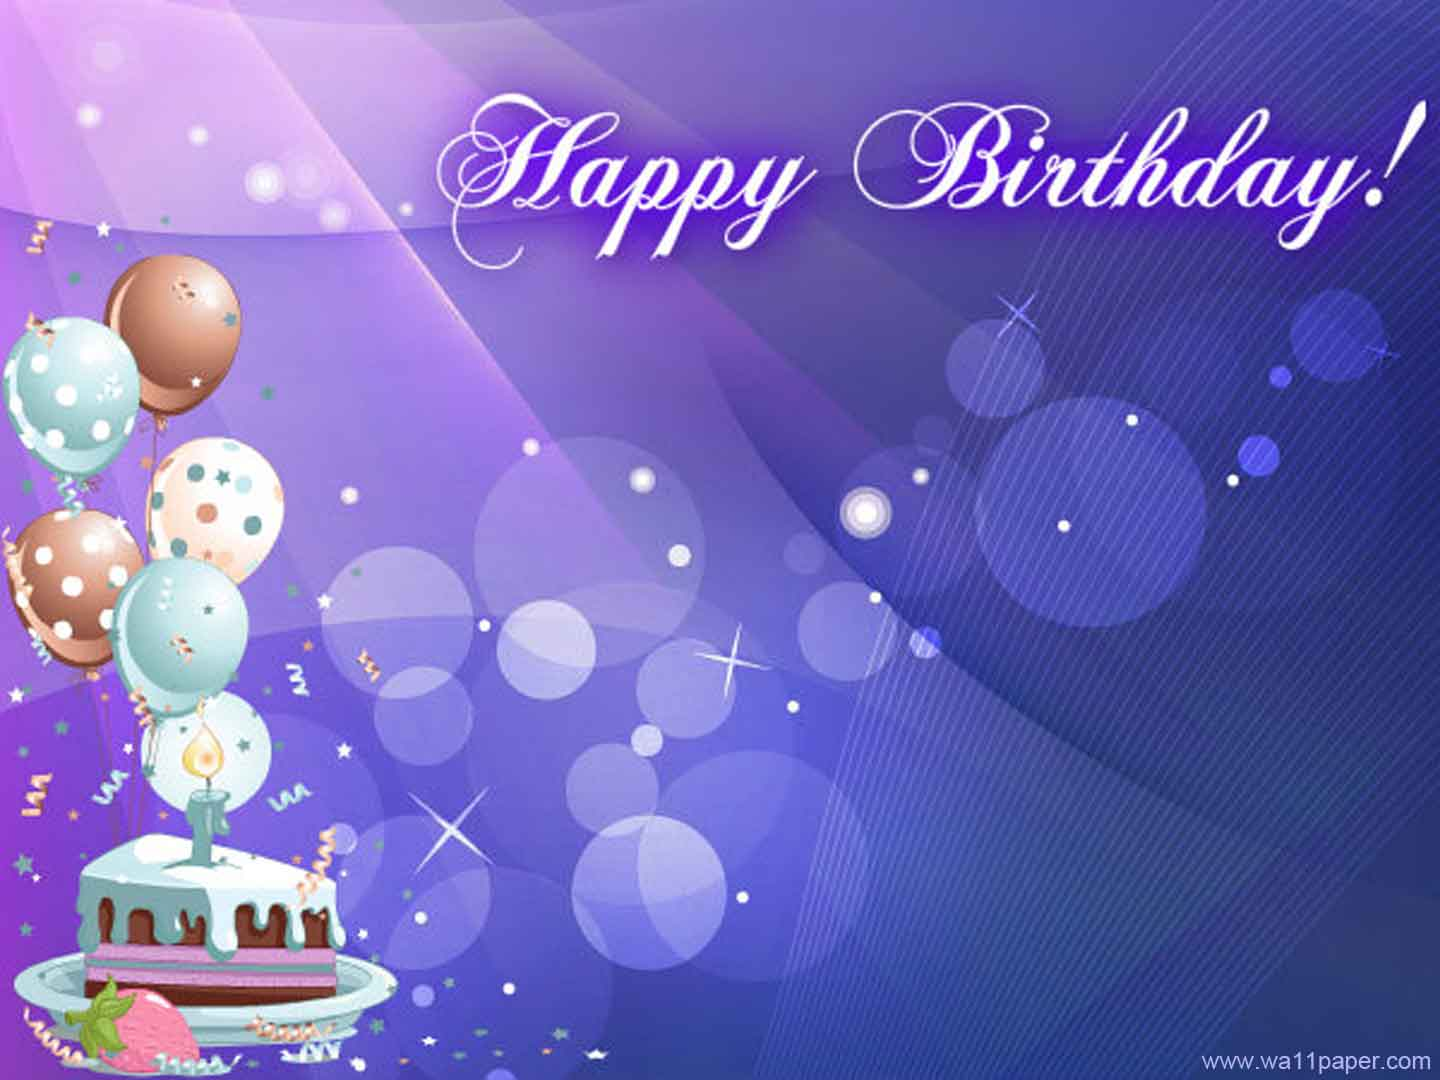 Happy Birthday Background Images